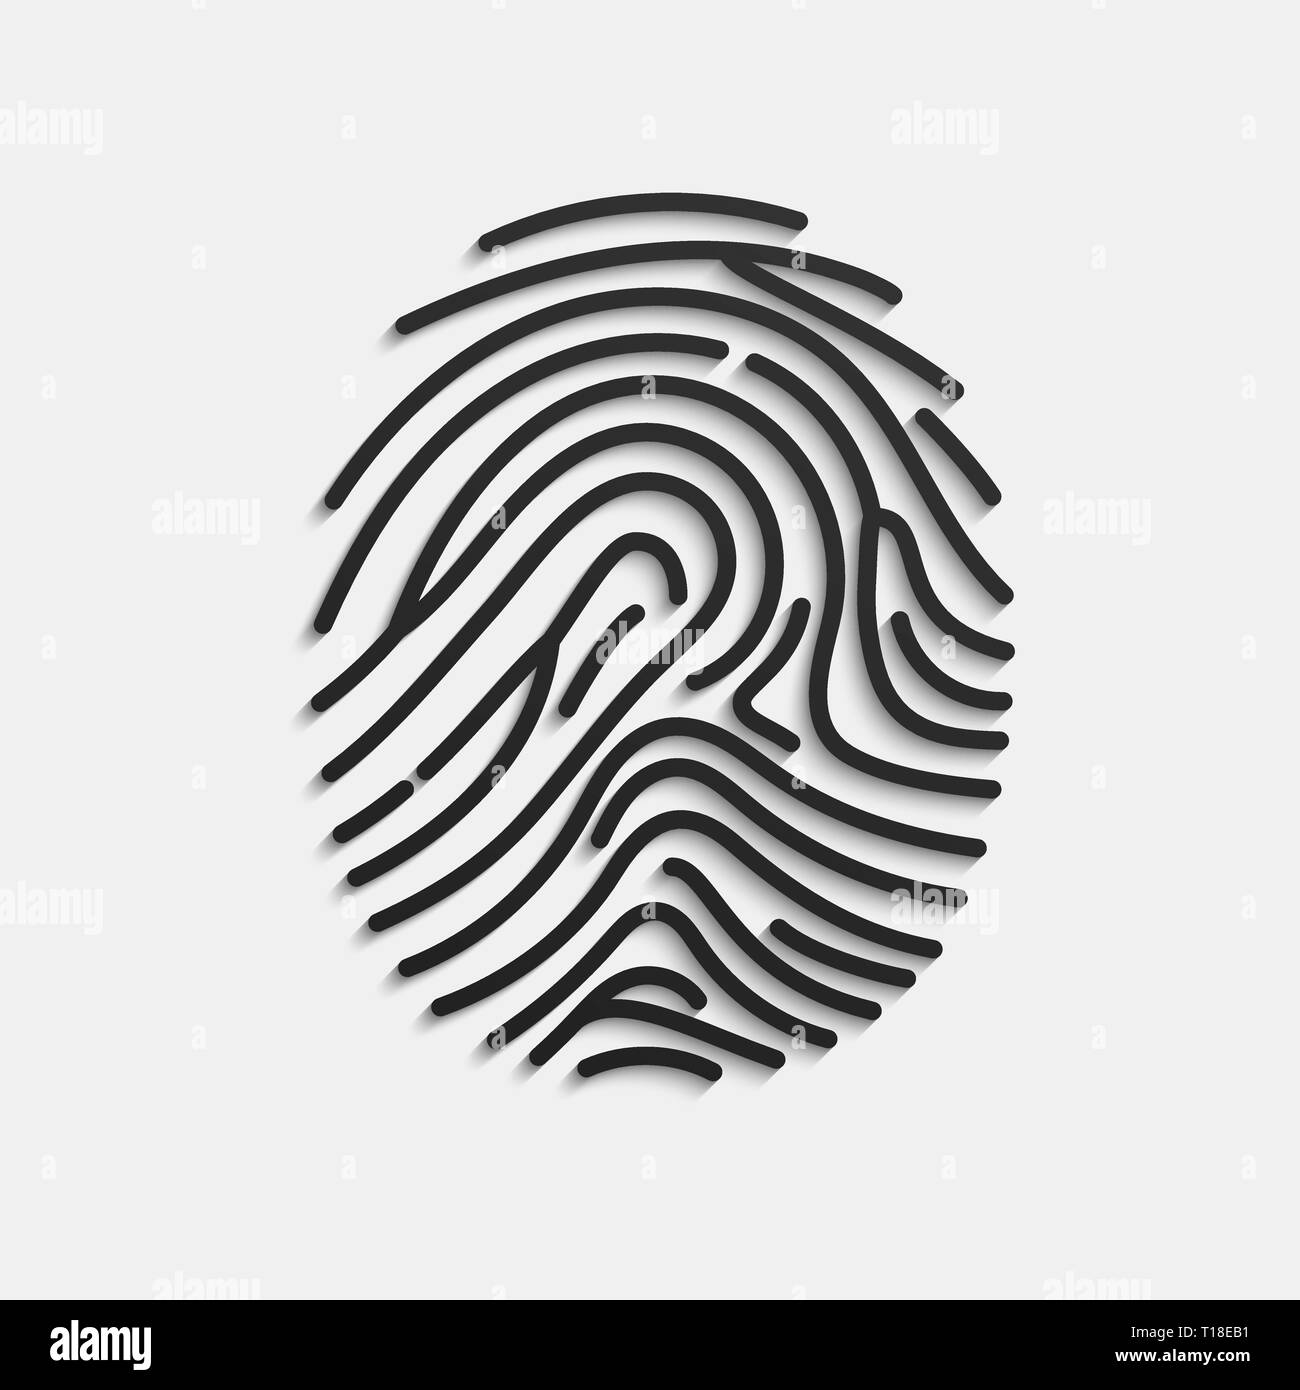 Fingerprint. Scan fingerprint isolated on white background. Volume press of finger with shadow. Vector illustration - Stock Image